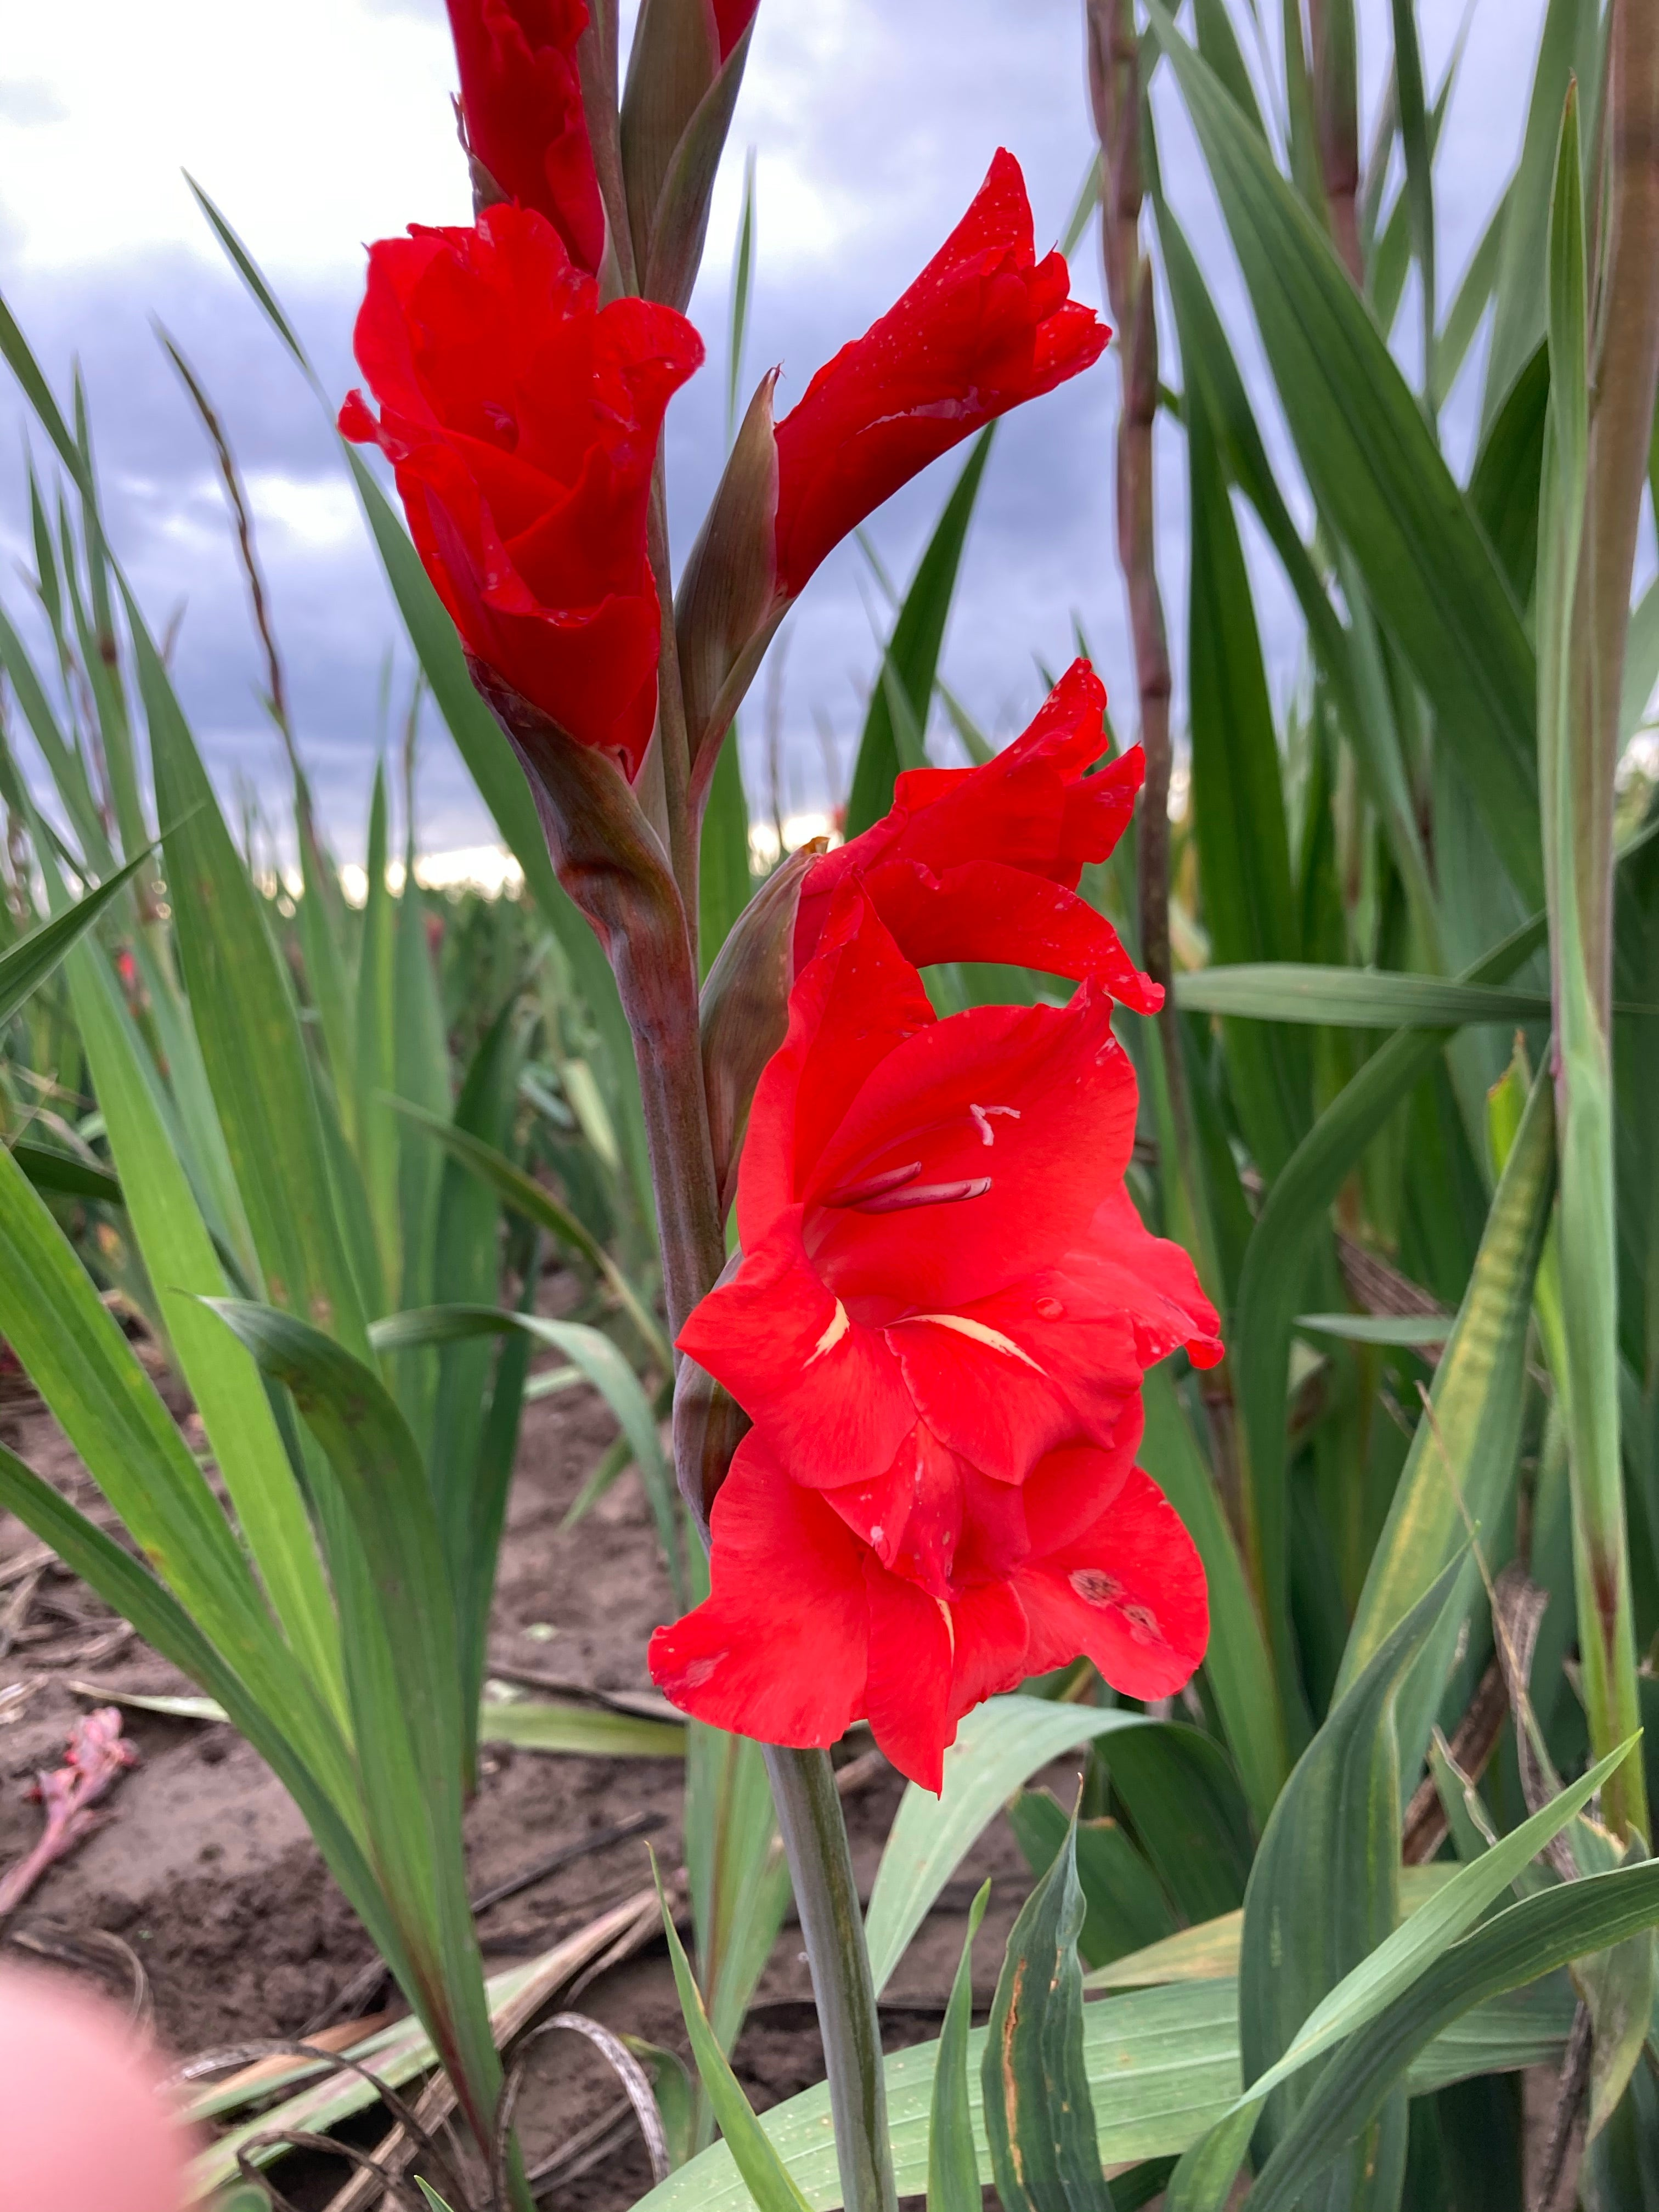 5 x Gladiolus 'Traderhorn' (Corms To Plant At Home) Free UK Postage